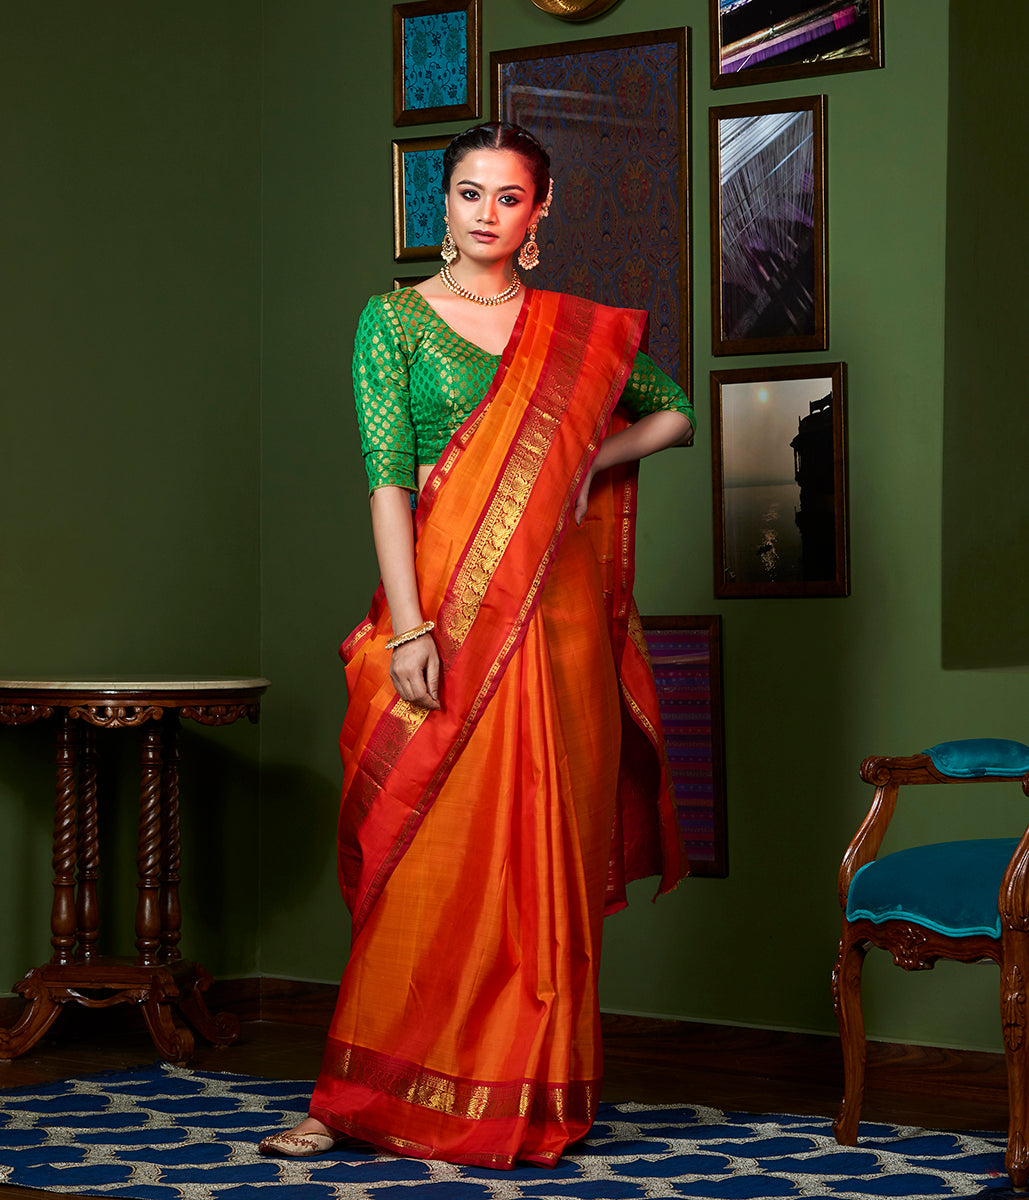 Handwoven Orange and Red Kanjivaram silk saree with annapakshi border